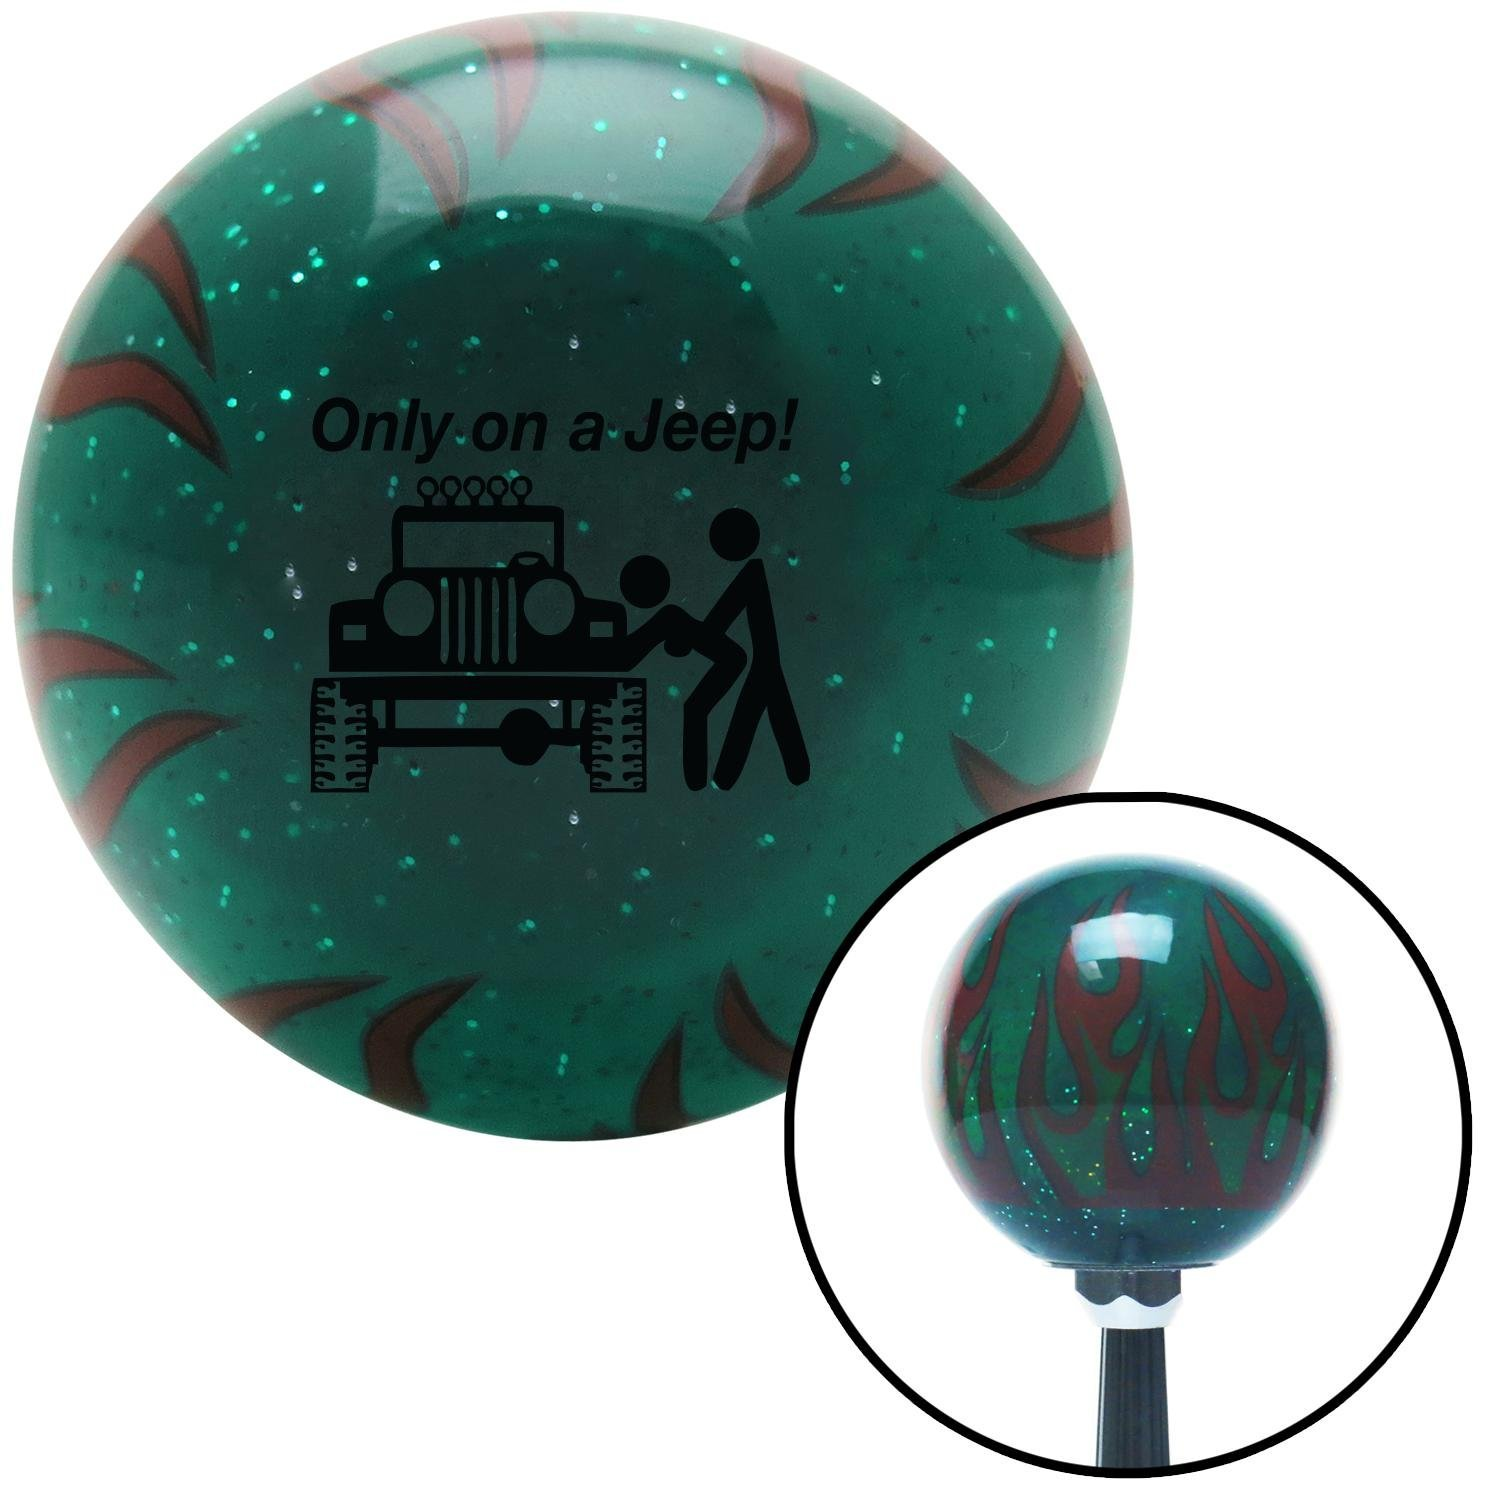 American Shifter 267488 Green Flame Metal Flake Shift Knob with M16 x 1.5 Insert Black Only On A Jeep